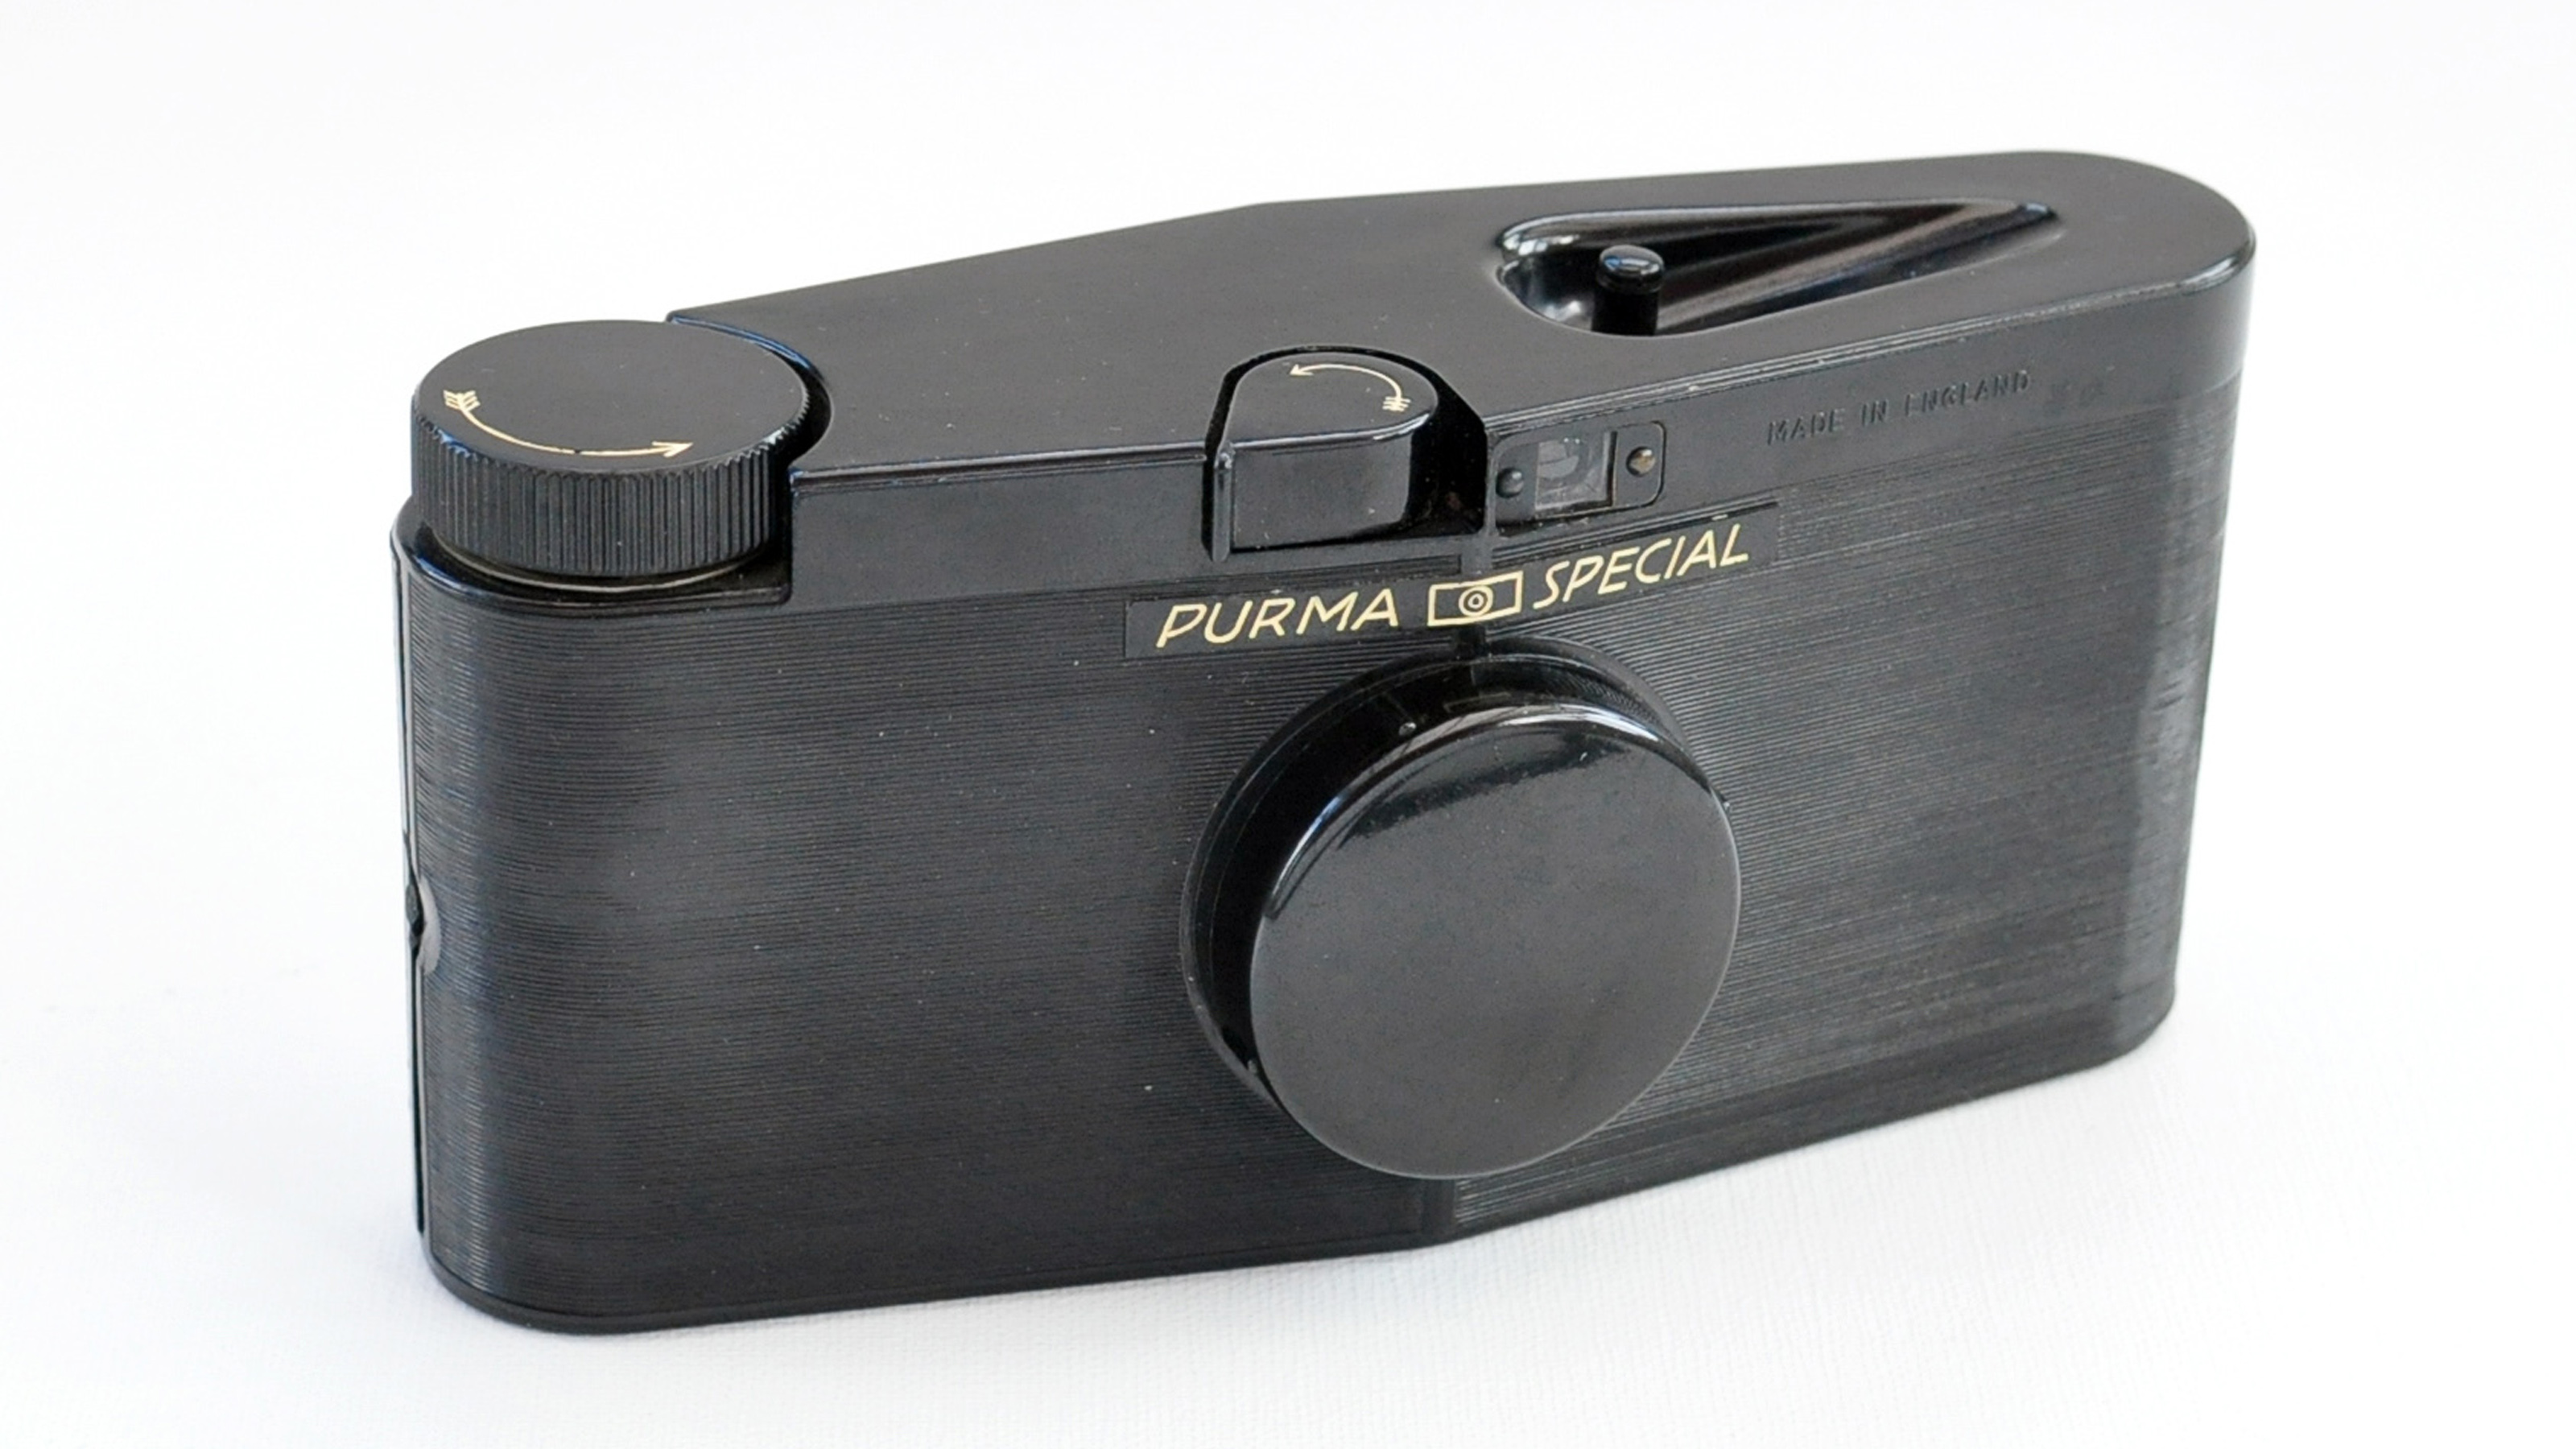 The front of the Purma Special camera